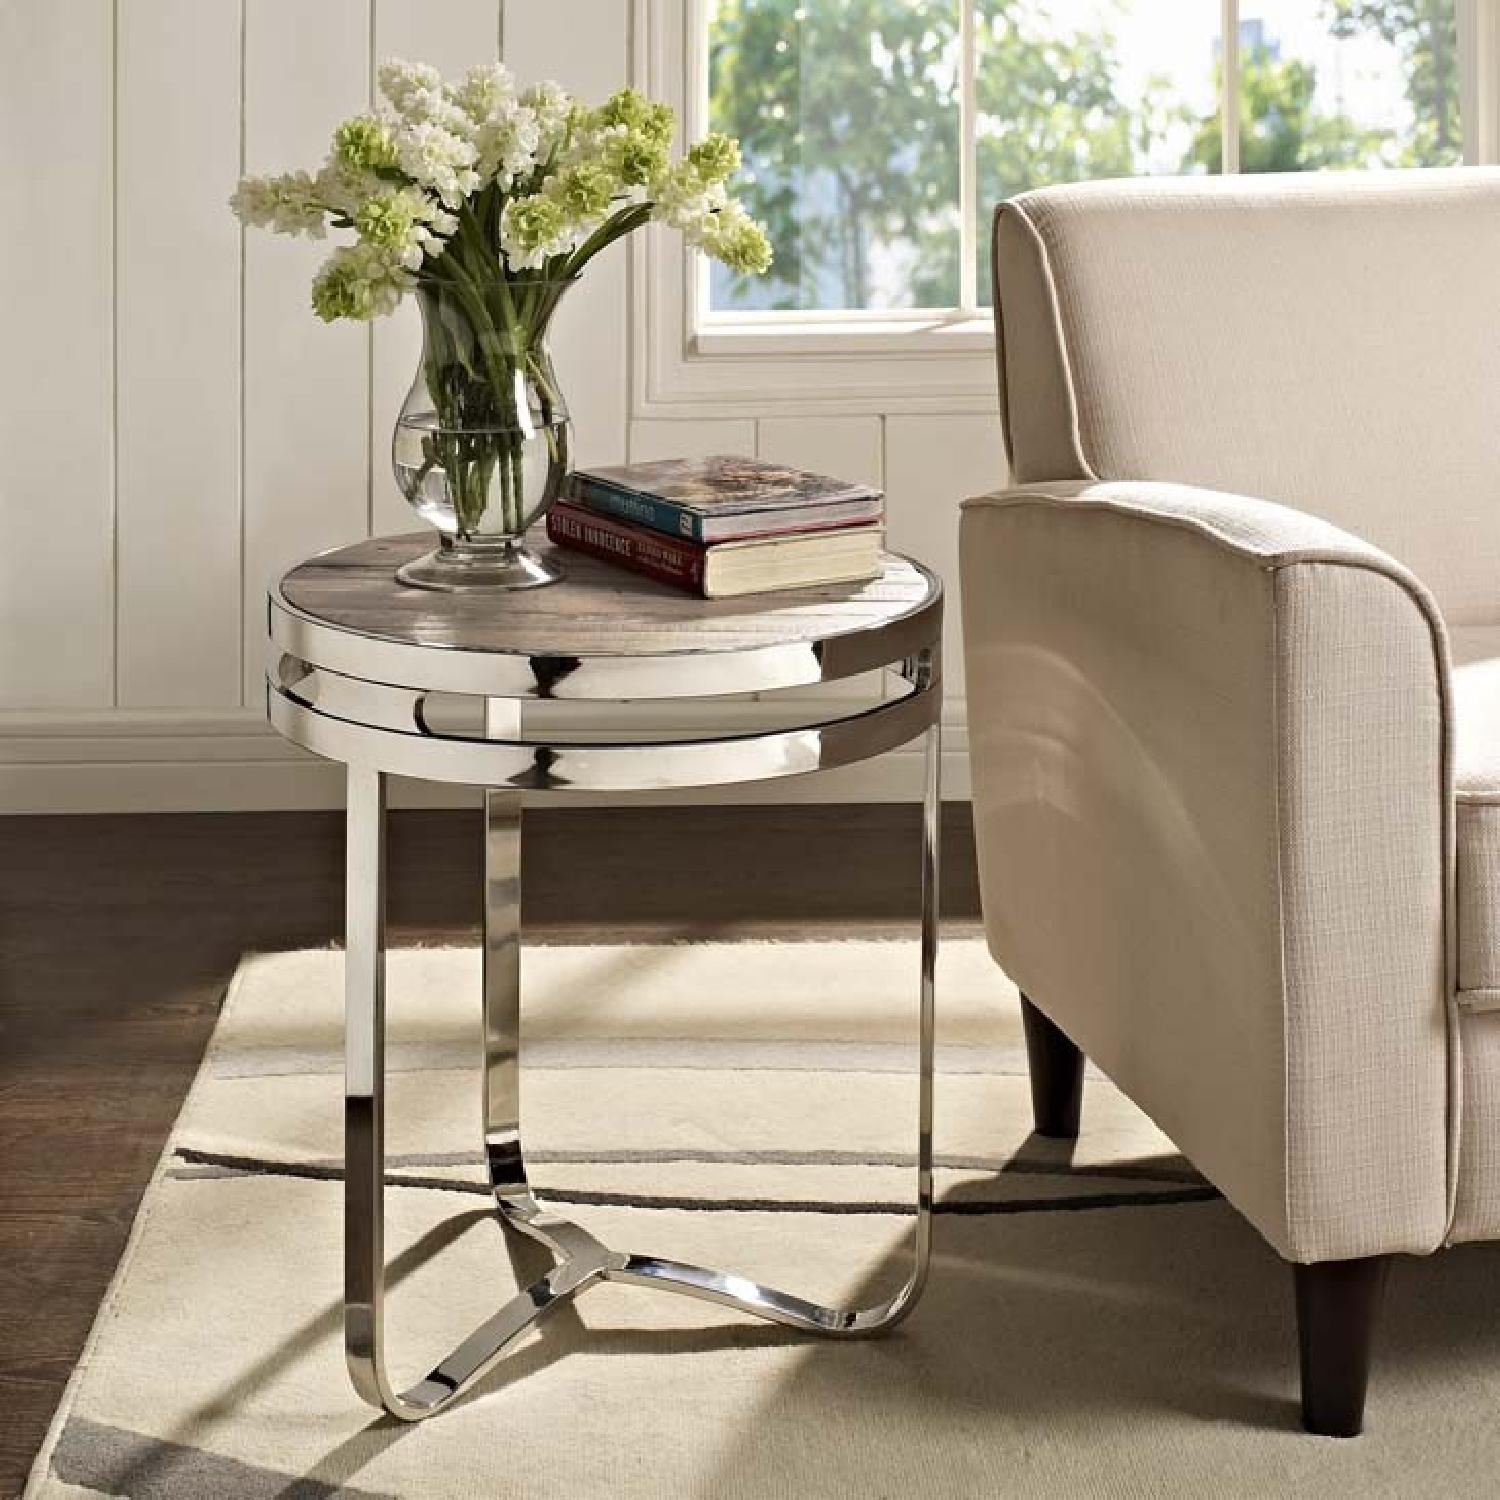 Manhattan home Design Provision Wood Top Side Table-0